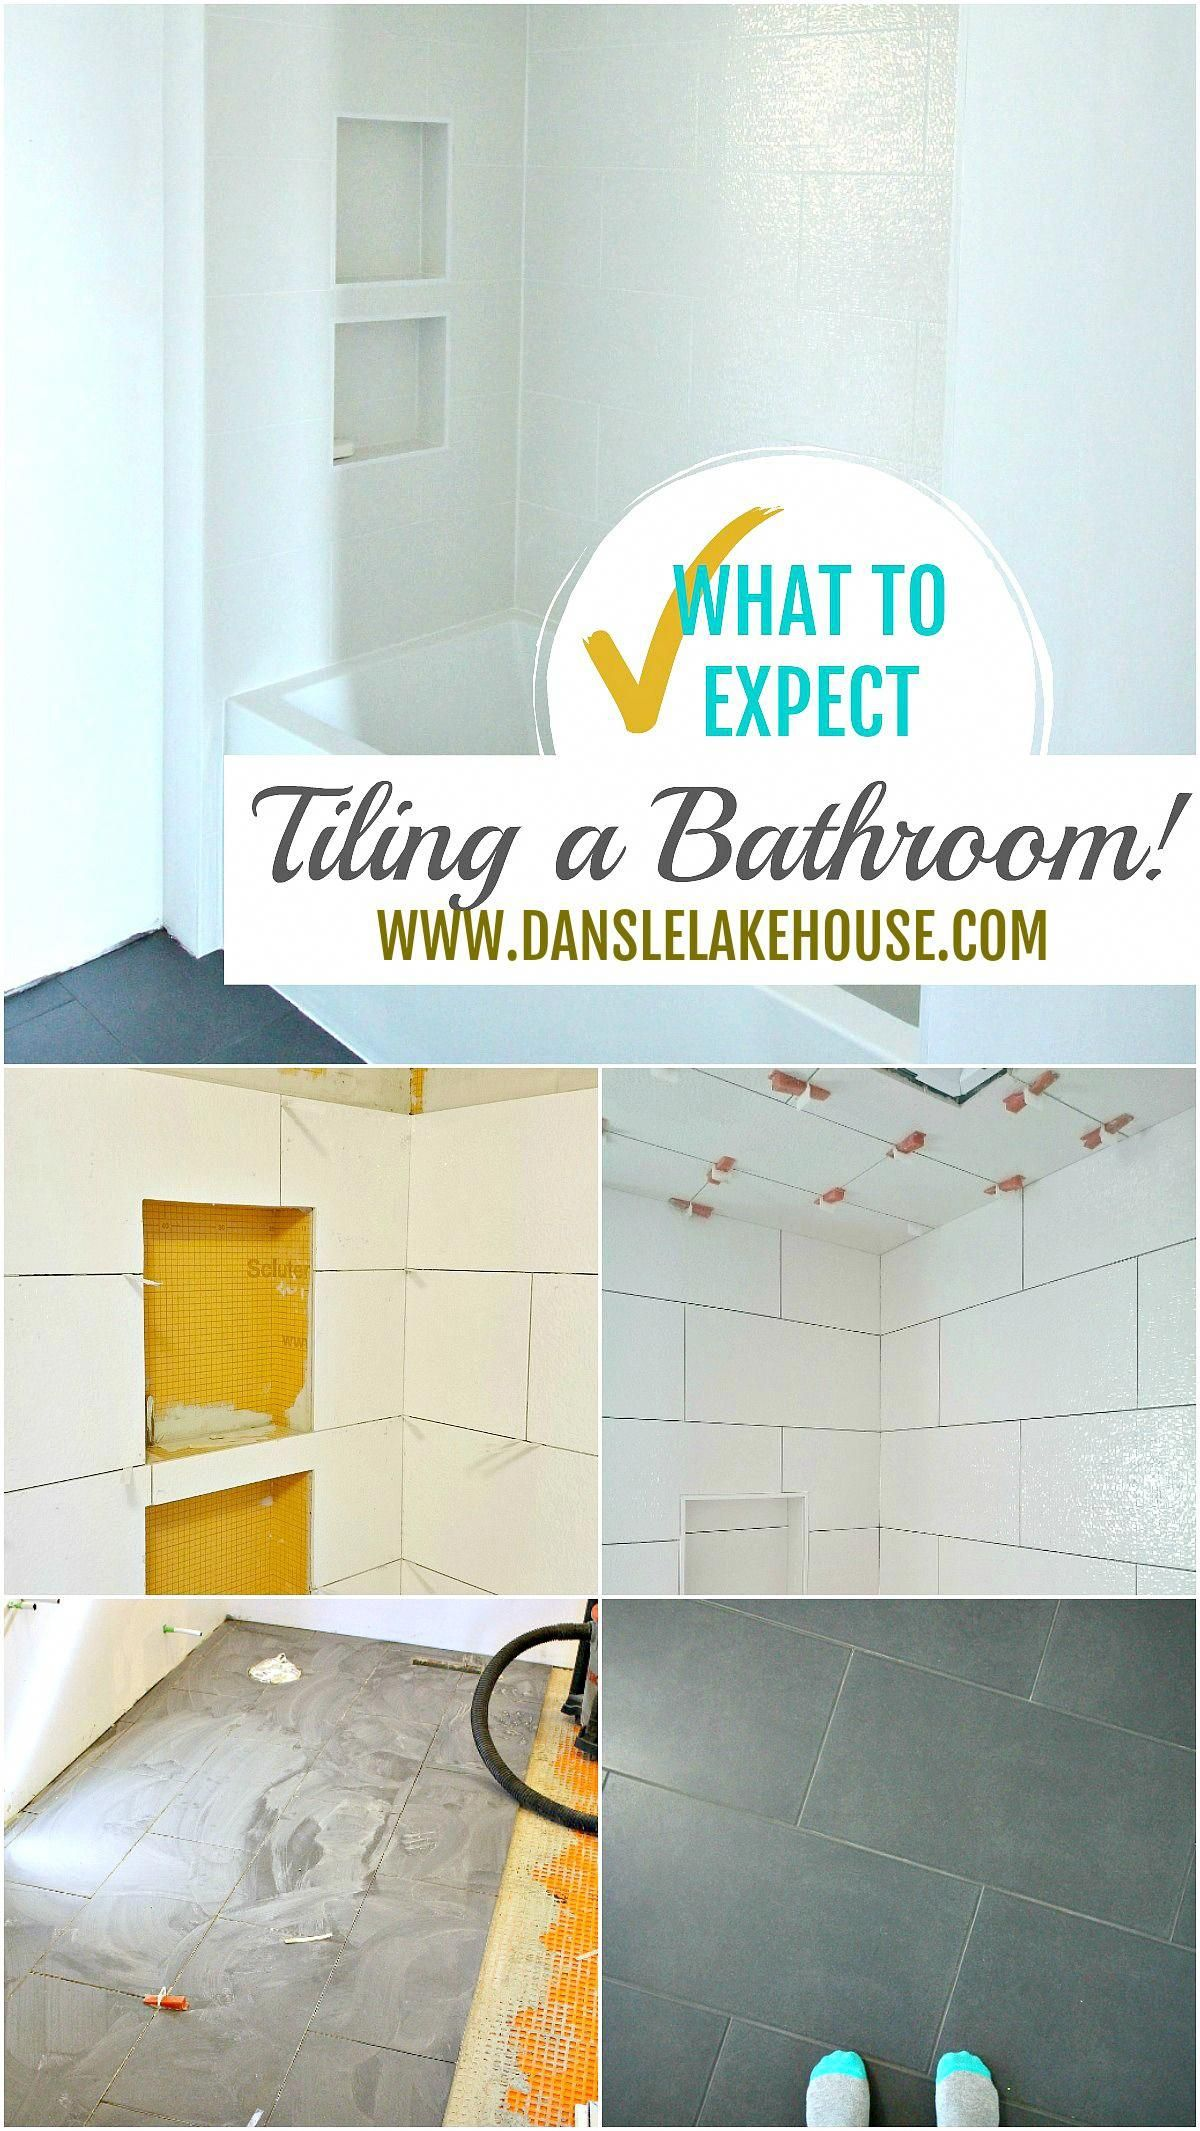 What to Expect Tiling a Bathoom - see the process, how long it takes, the problems we had and what we're so happy with! #tiling #bathroom #renovating #bathroomdiyfurniture